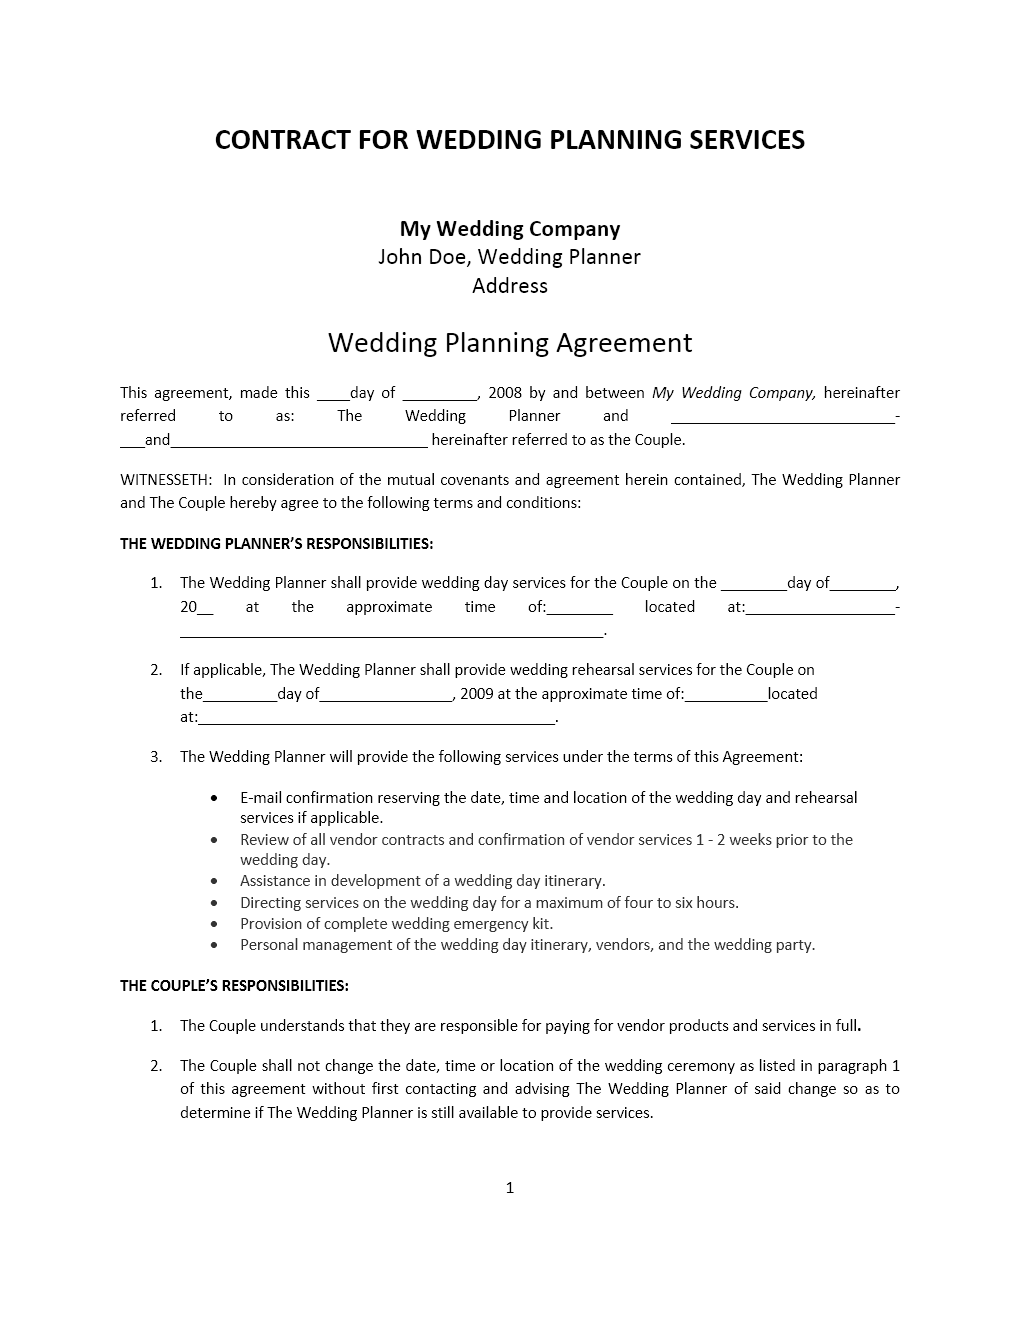 Wedding planner contract template for Event terms and conditions template